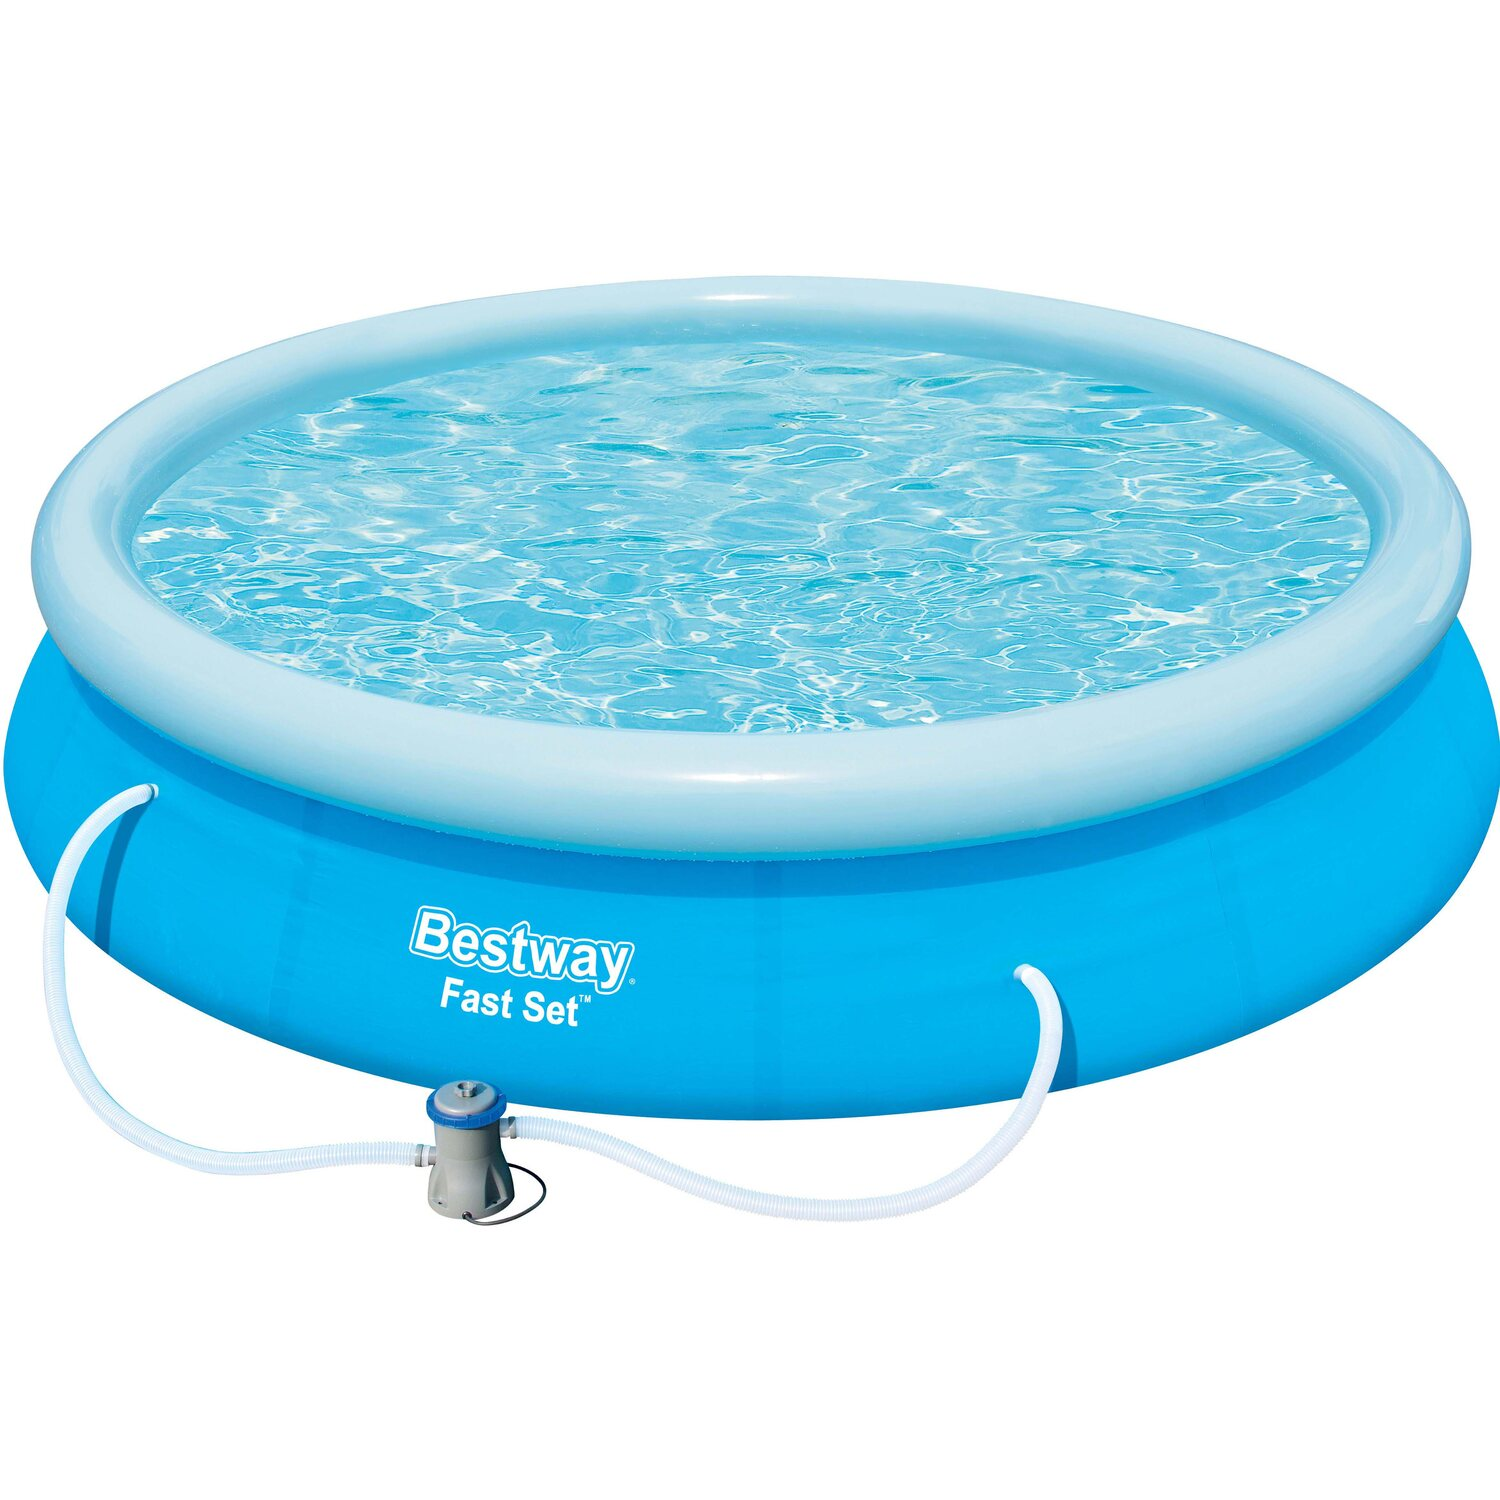 Bestway set fast piscina 366 cm x 76 cm acquista da obi for Bestway italia piscine